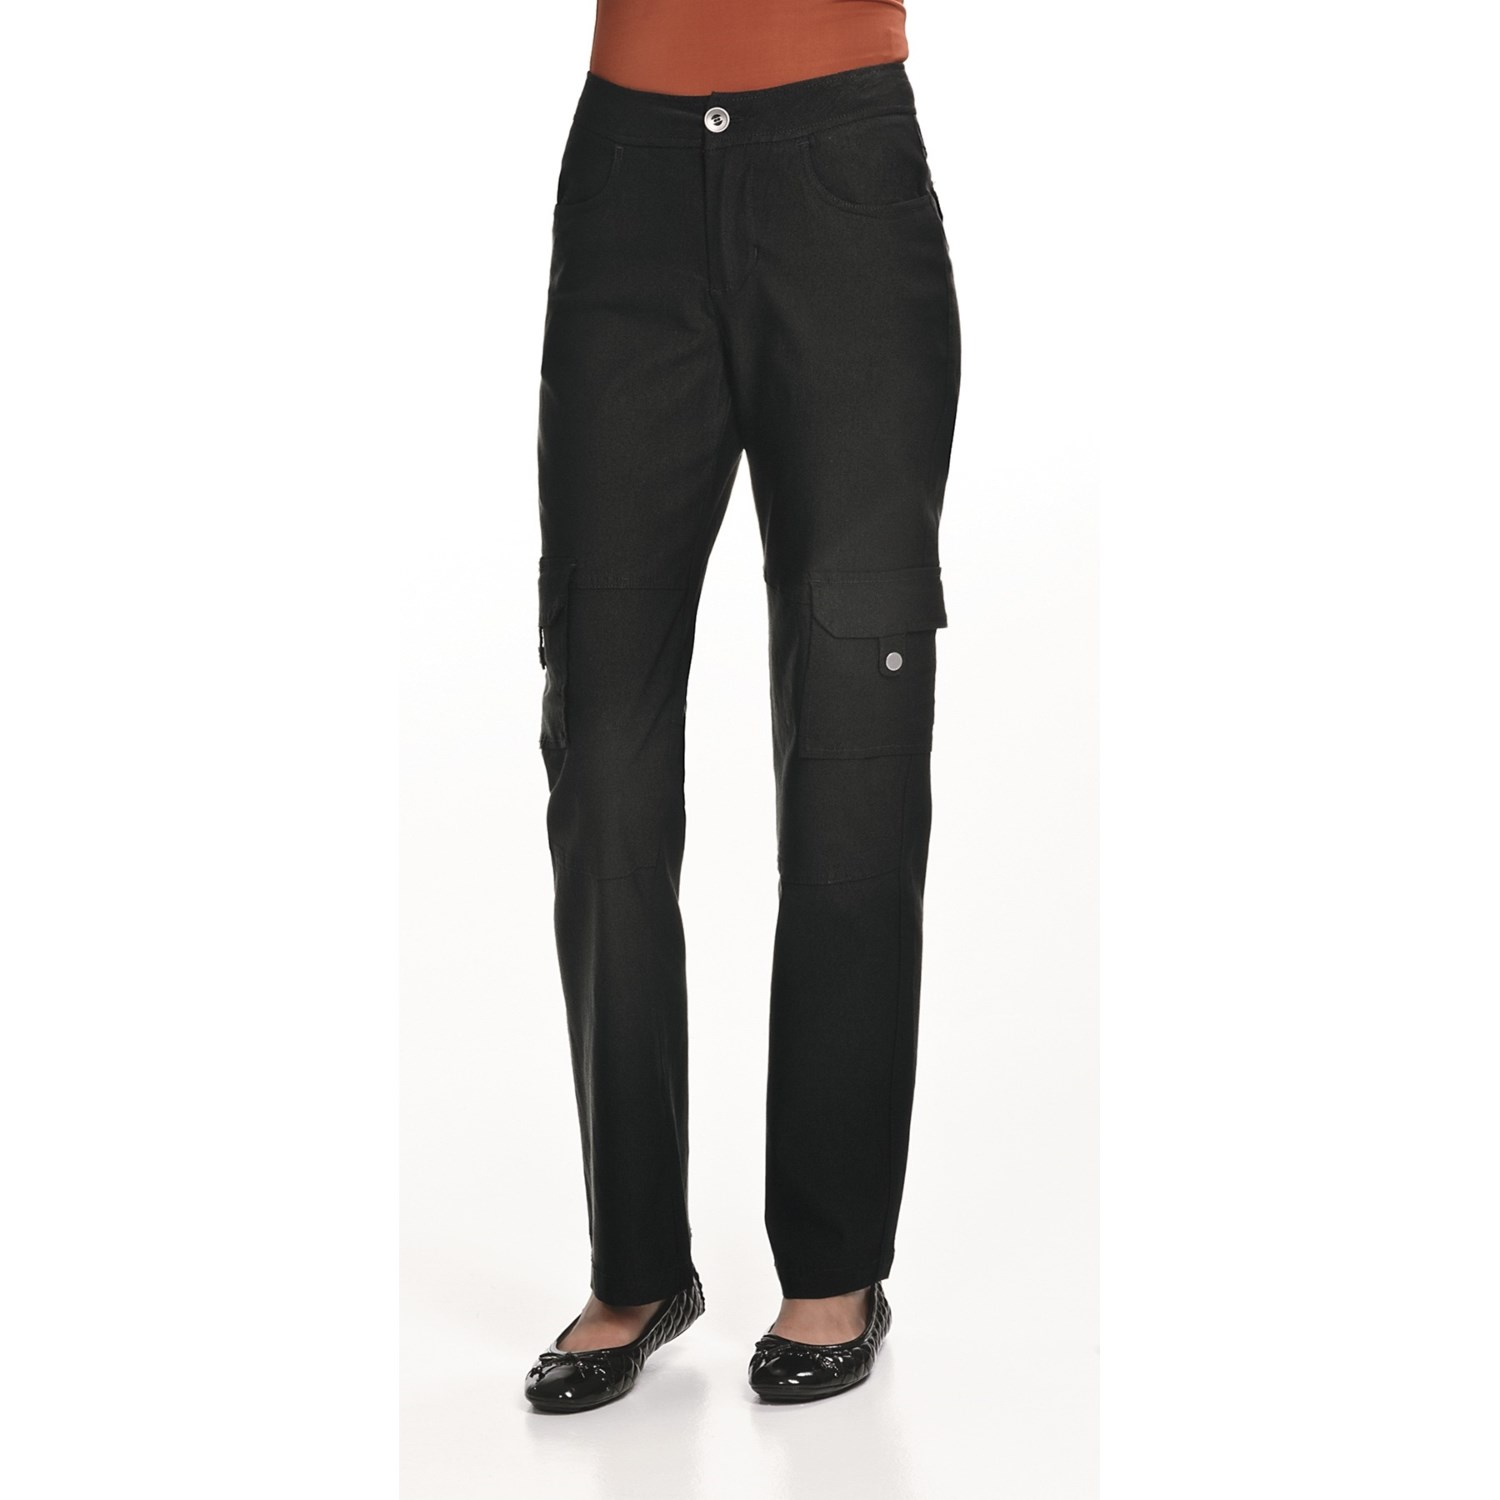 Cool The Dickies Womens Premium Cargo Pant Is A Relaxed Fit, Straight Leg Pant That Is Made From A 675oz Mechanical Stretch Twill, 65% Polyester 35% Cotton This Fabric Is Wrinkle Resistant And Has Scotchguard Easy Care Stain Release